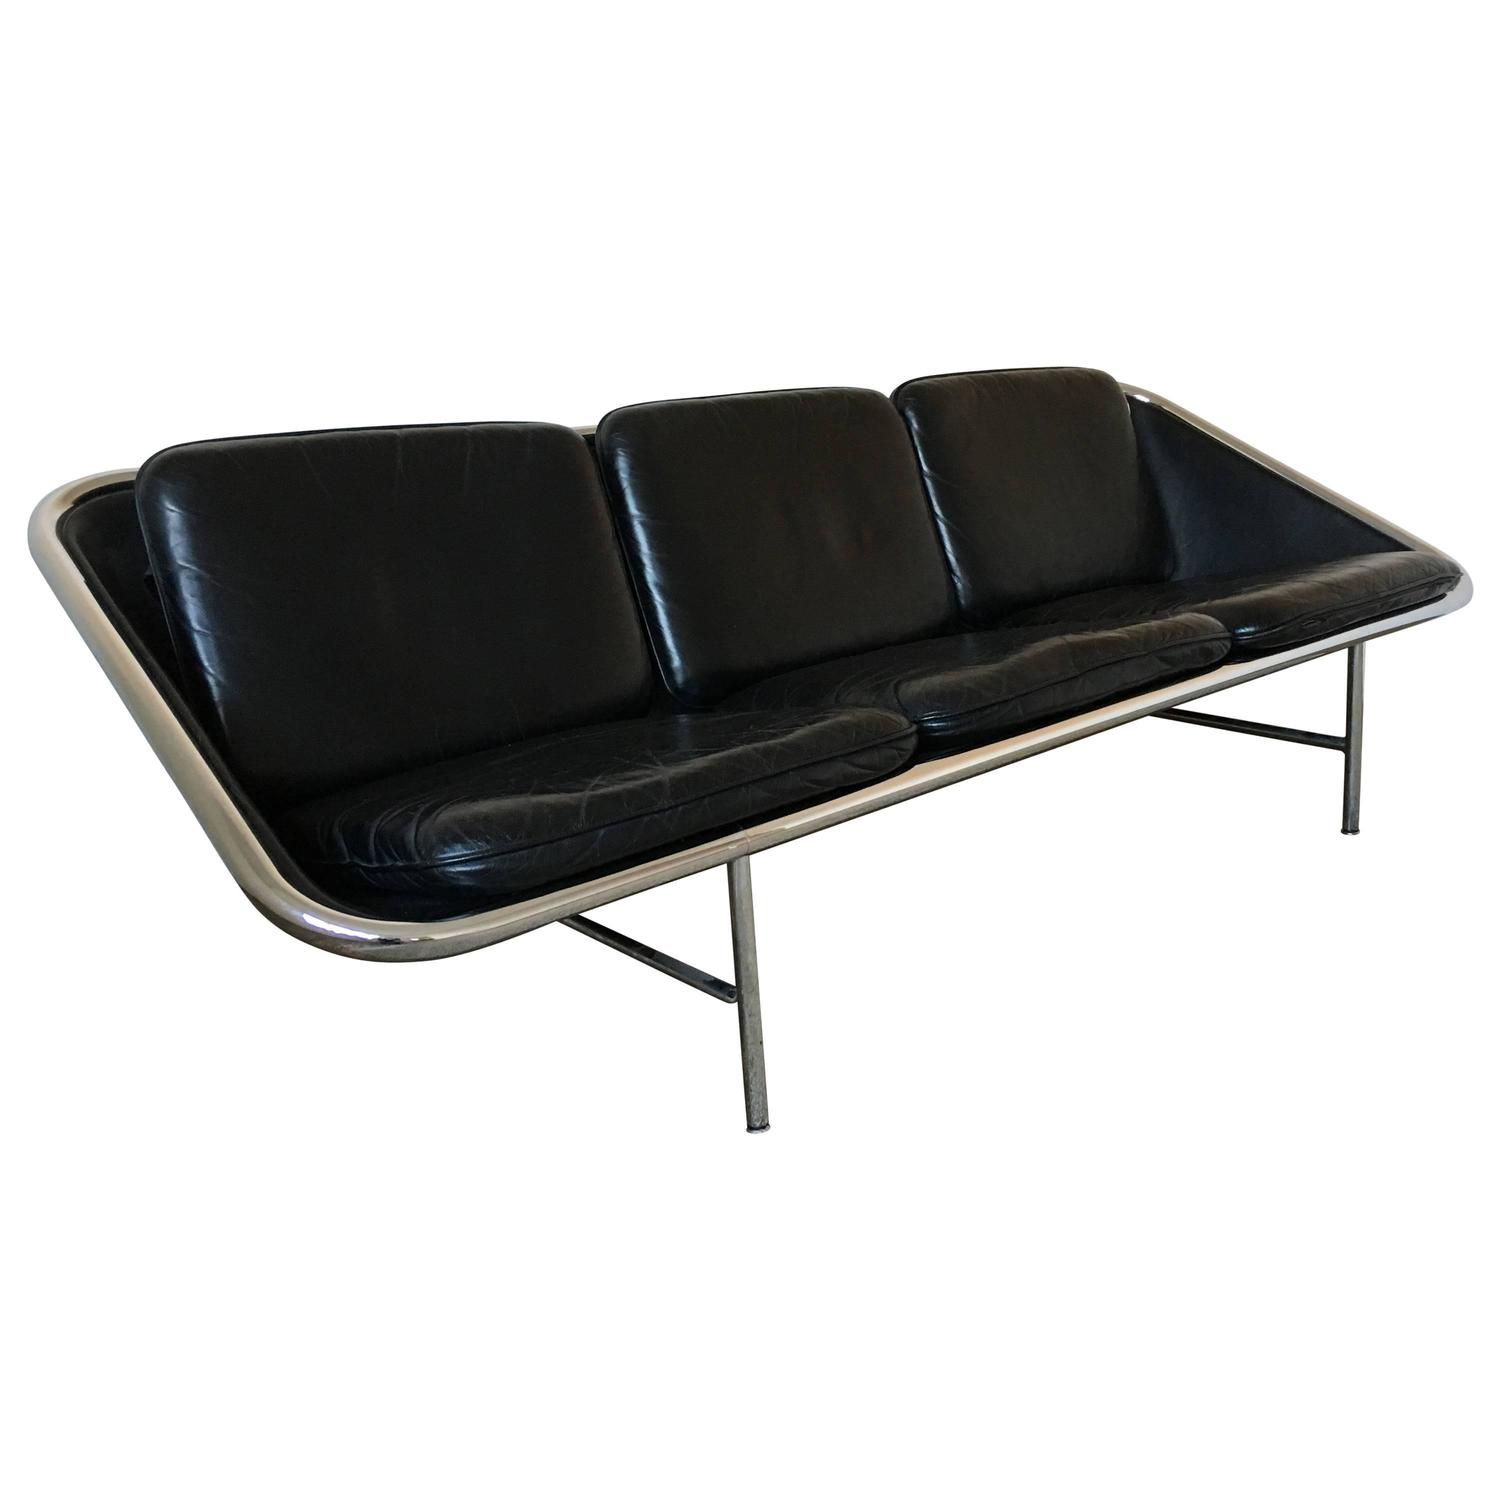 George Nelson Black Leather Sling Sofa Herman Miller circa 1960